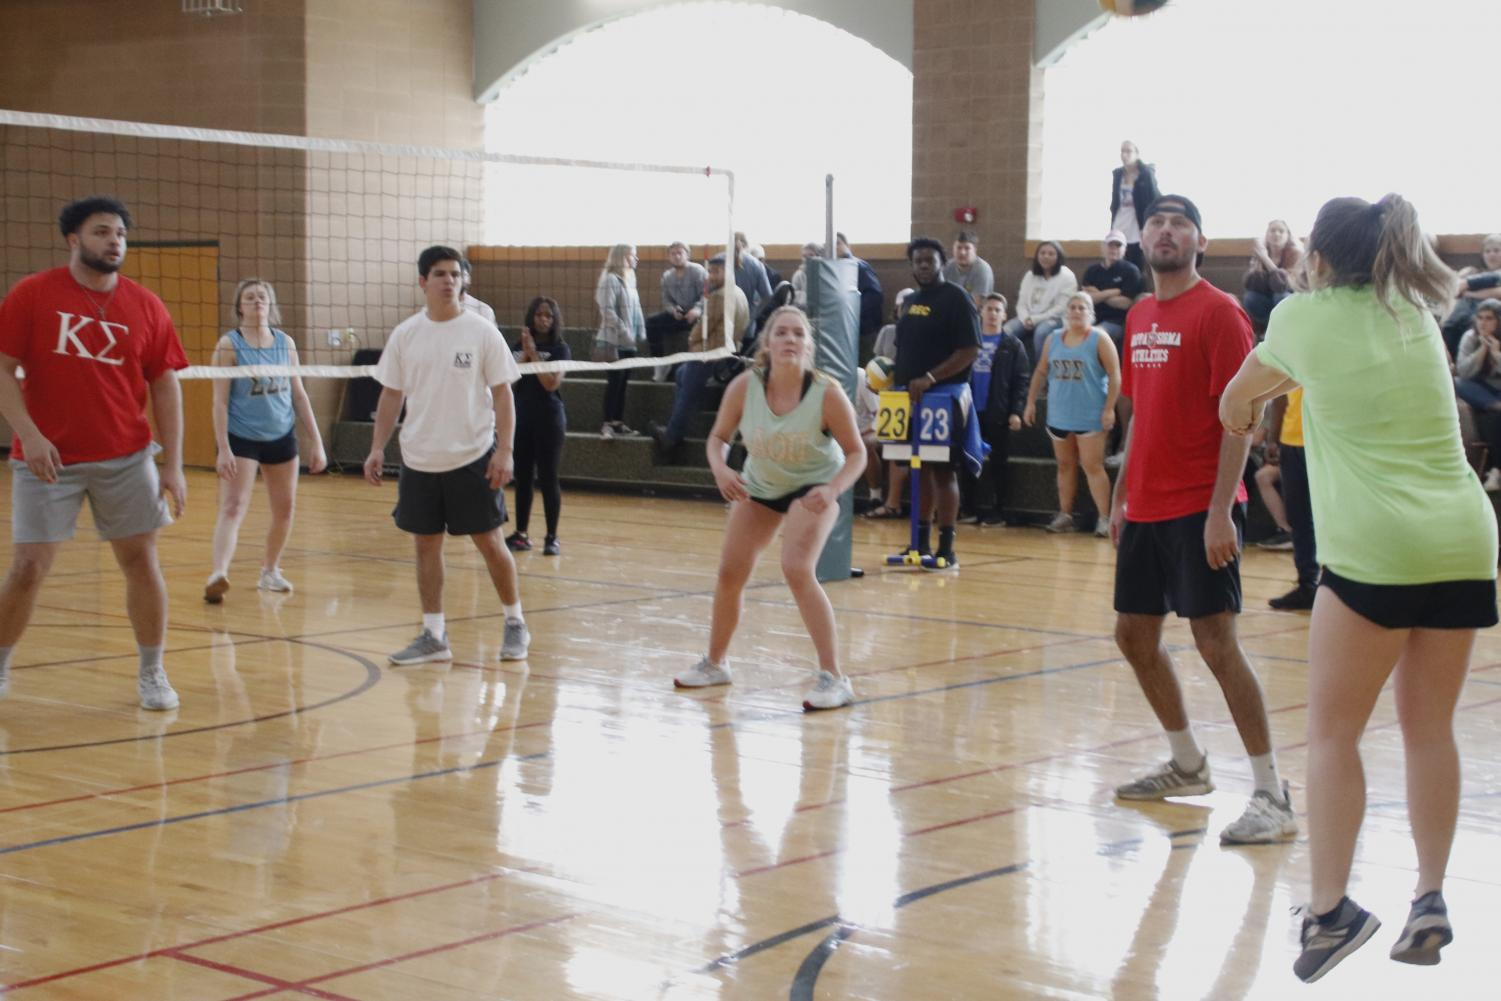 Volleyball was the first Greek Week sport to take place last semester. Greek organizations partenered up in teams and competed through various activities.